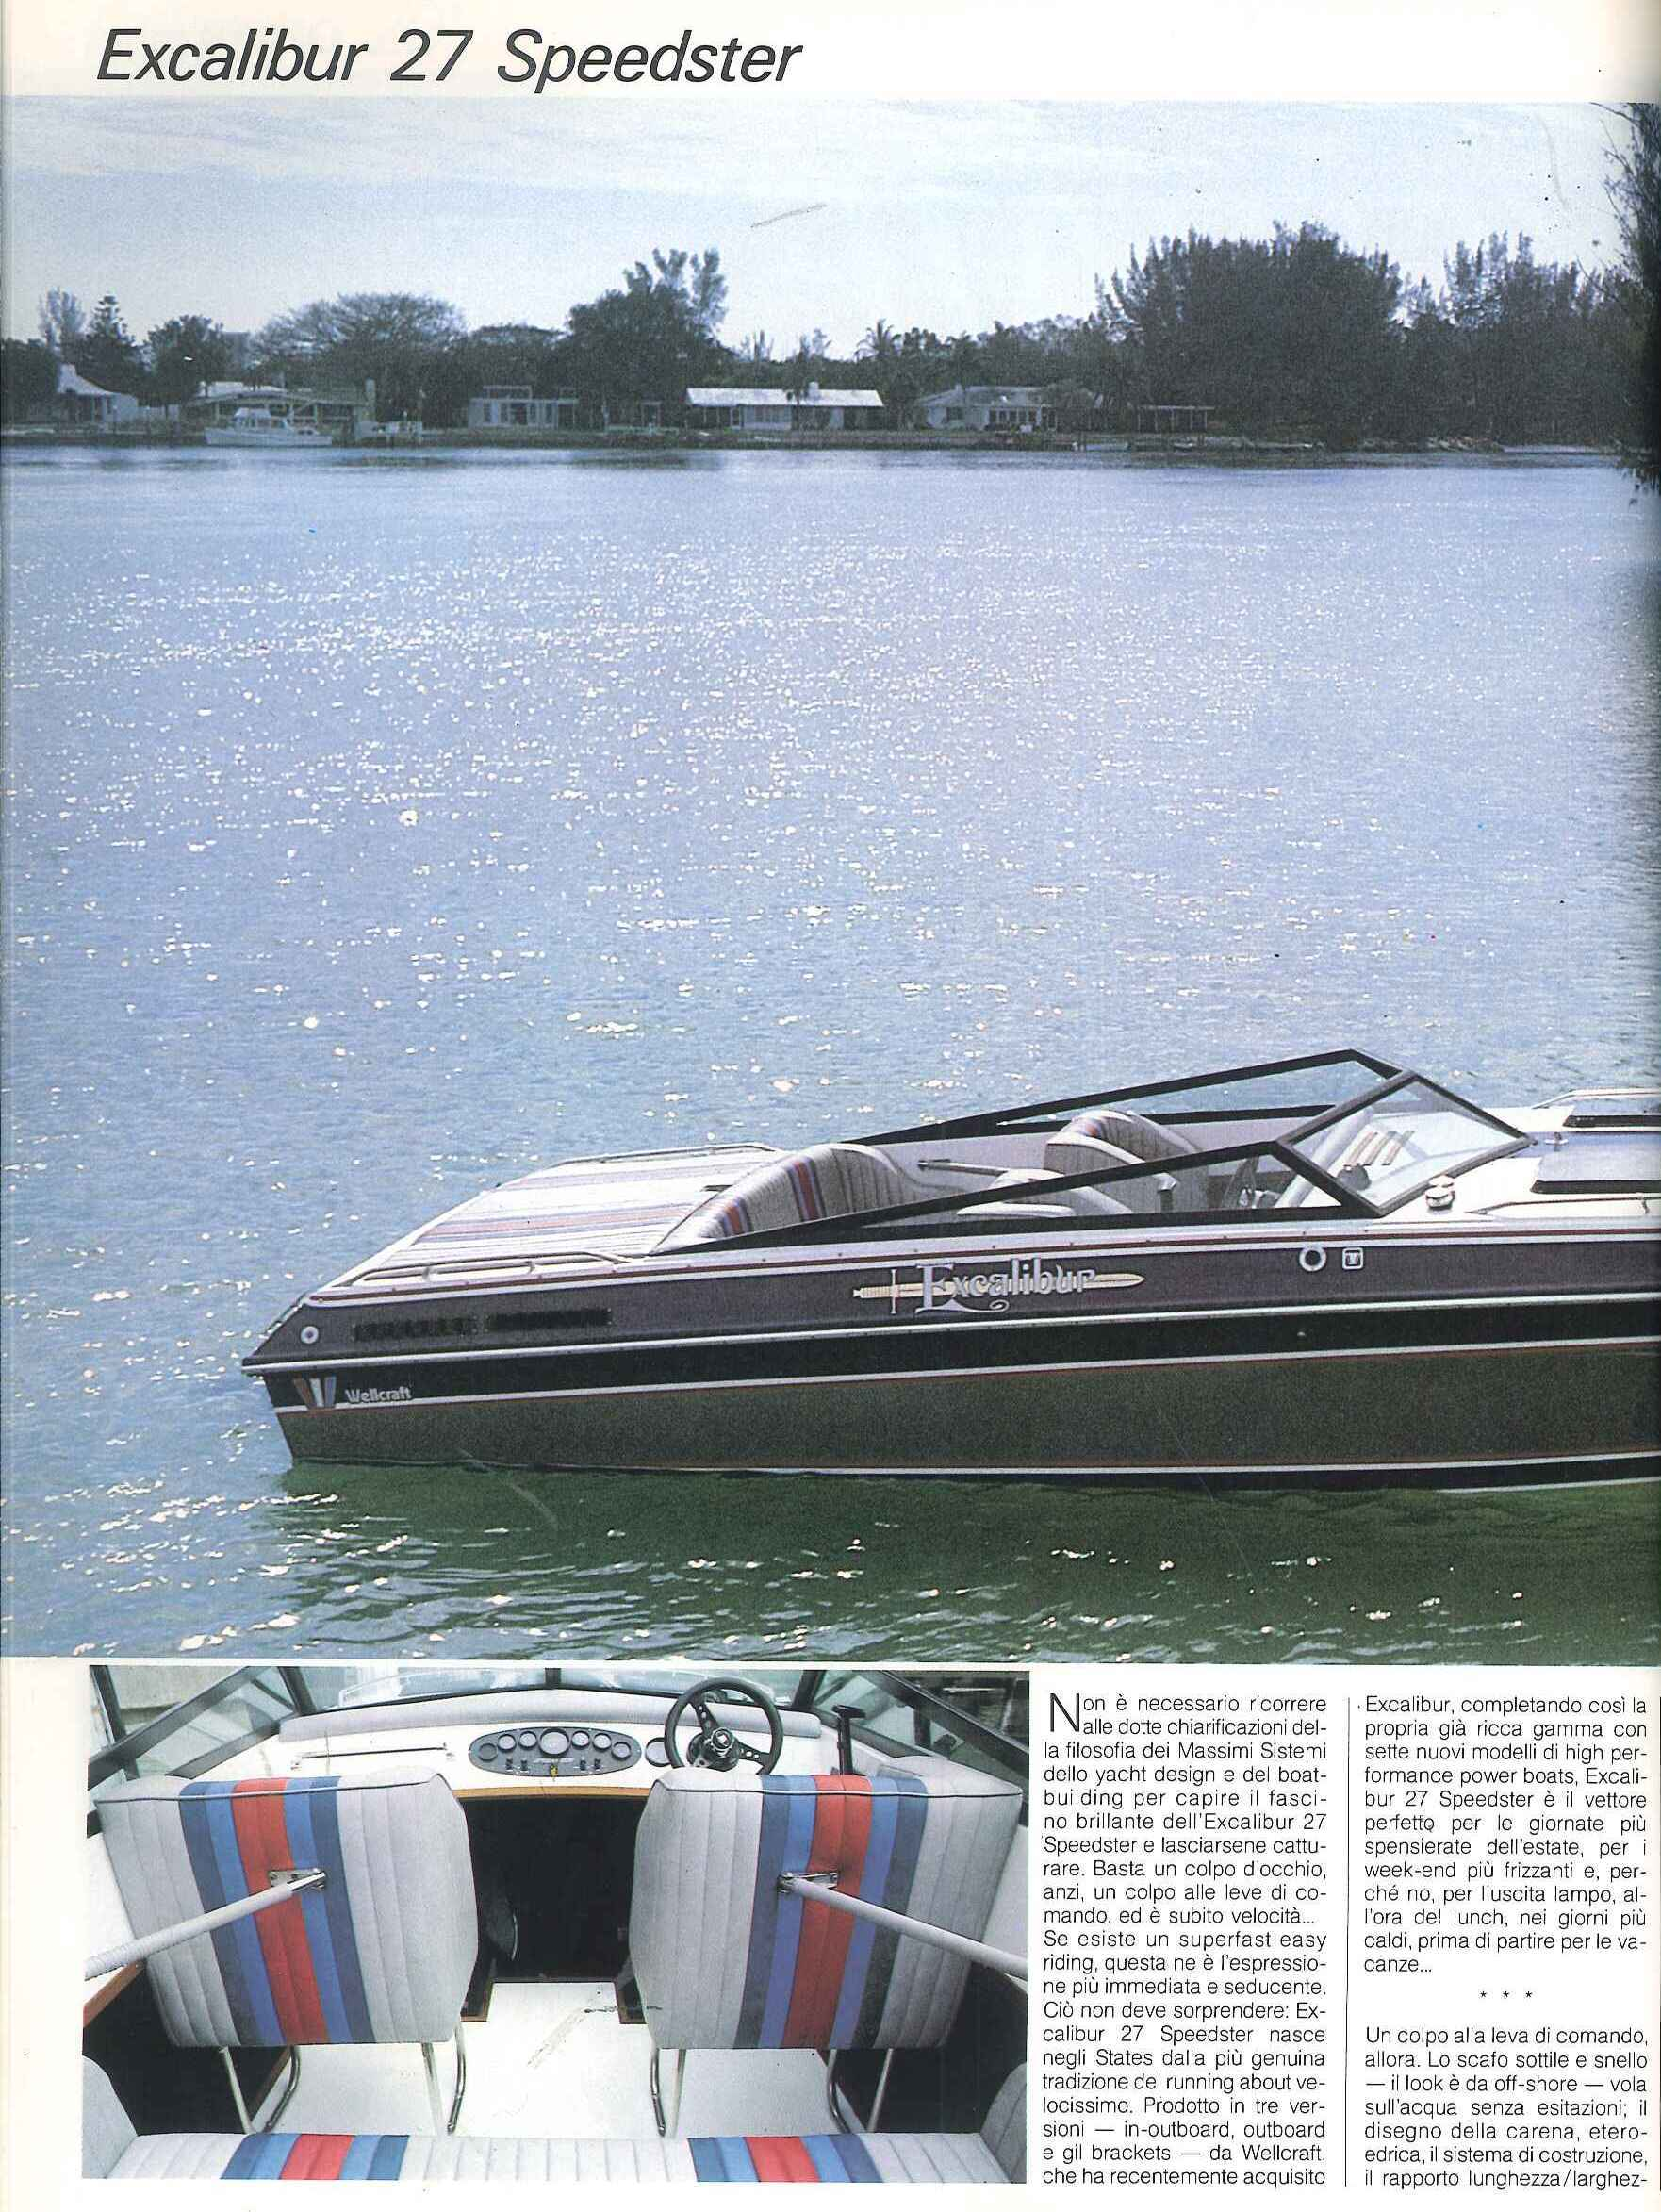 1984 05 PRESS WELLCRAFT EXCALIBUR 27 UOMO MARE N°77 (01).jpg